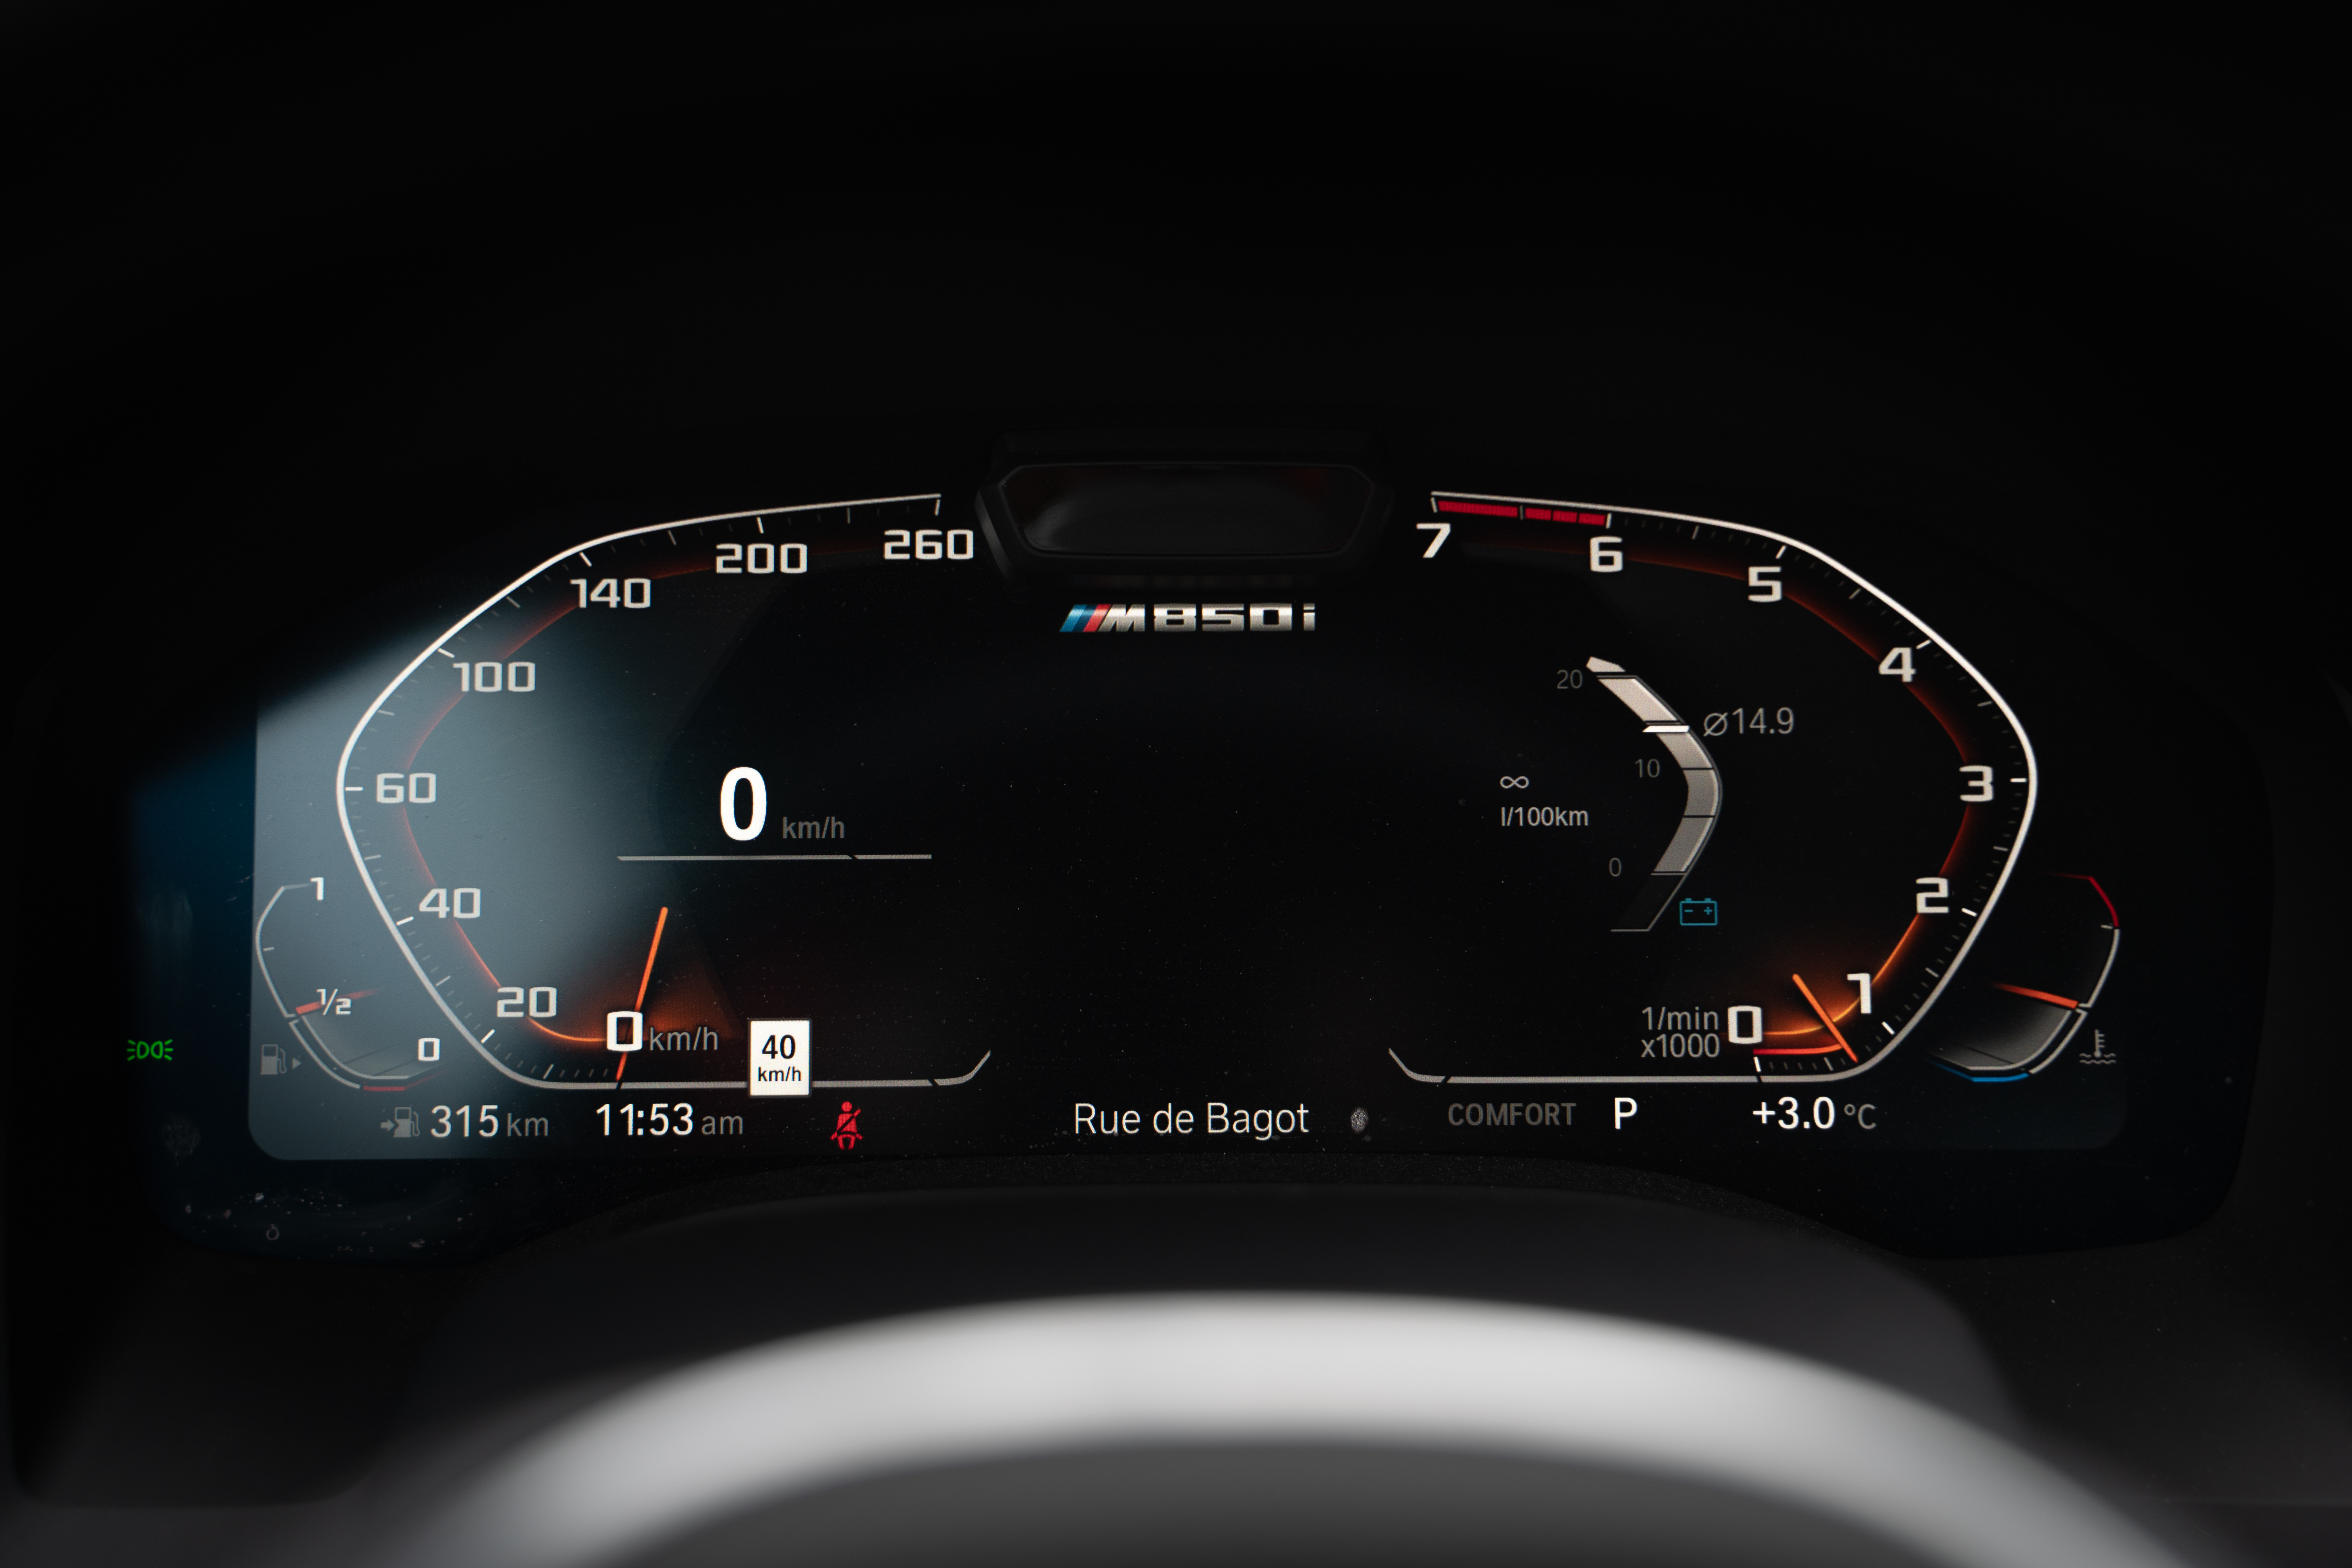 2019 BMW M850i: Trying Very Hard To Be Two Cars At Once